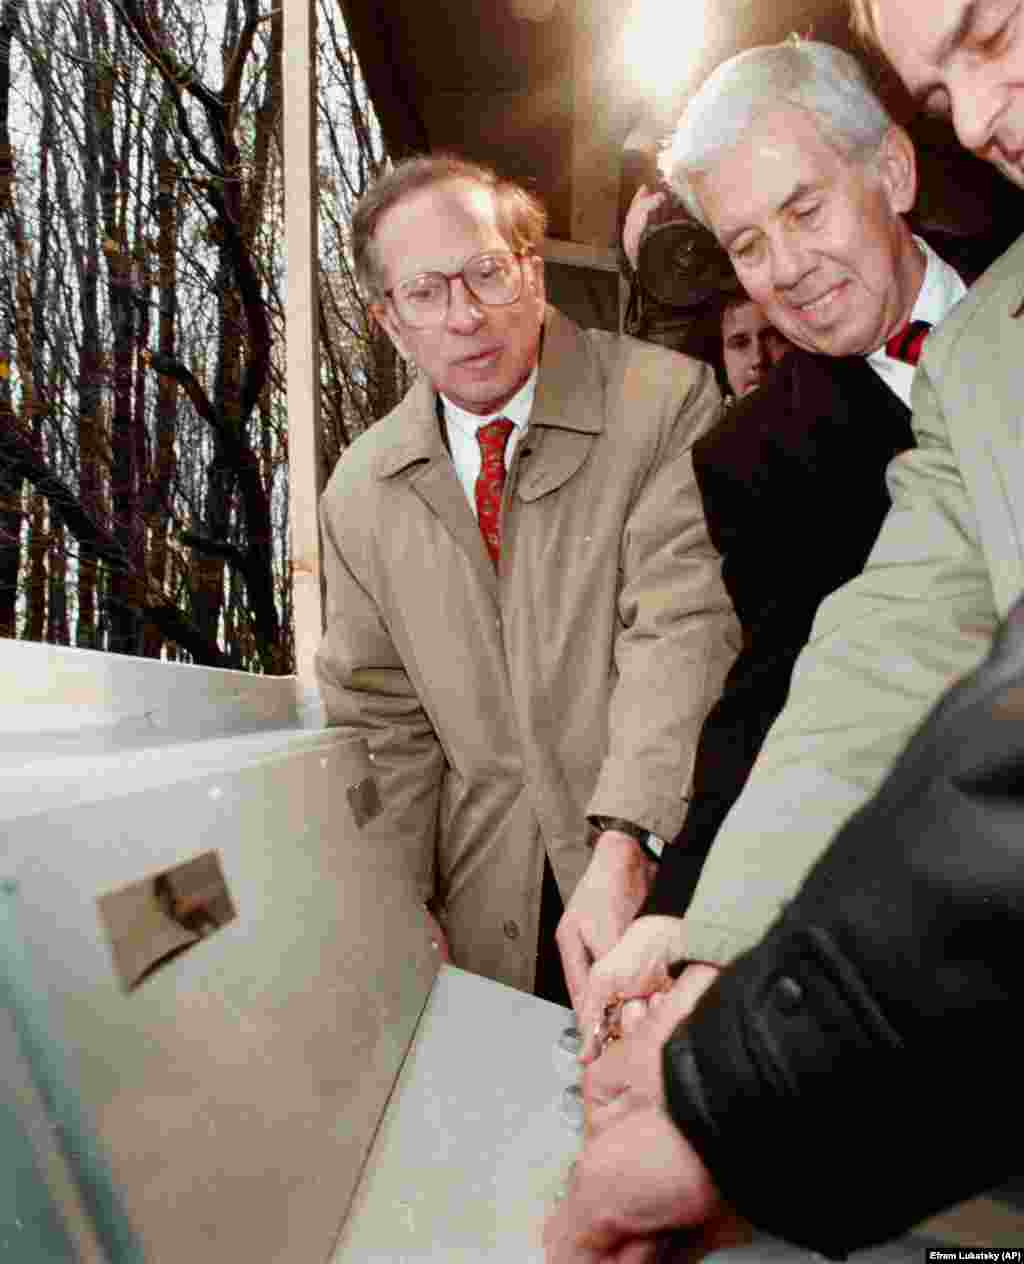 U.S. Senators Sam Nunn and Richard Lugar turn two tiny keys to initiate the destruction of a former Soviet nuclear missile silo in the formerly top-secret Khmelnitsky military base in central Ukraine on October 23, 1996. The keys once held the power to launch SS-19 missiles at the United States.